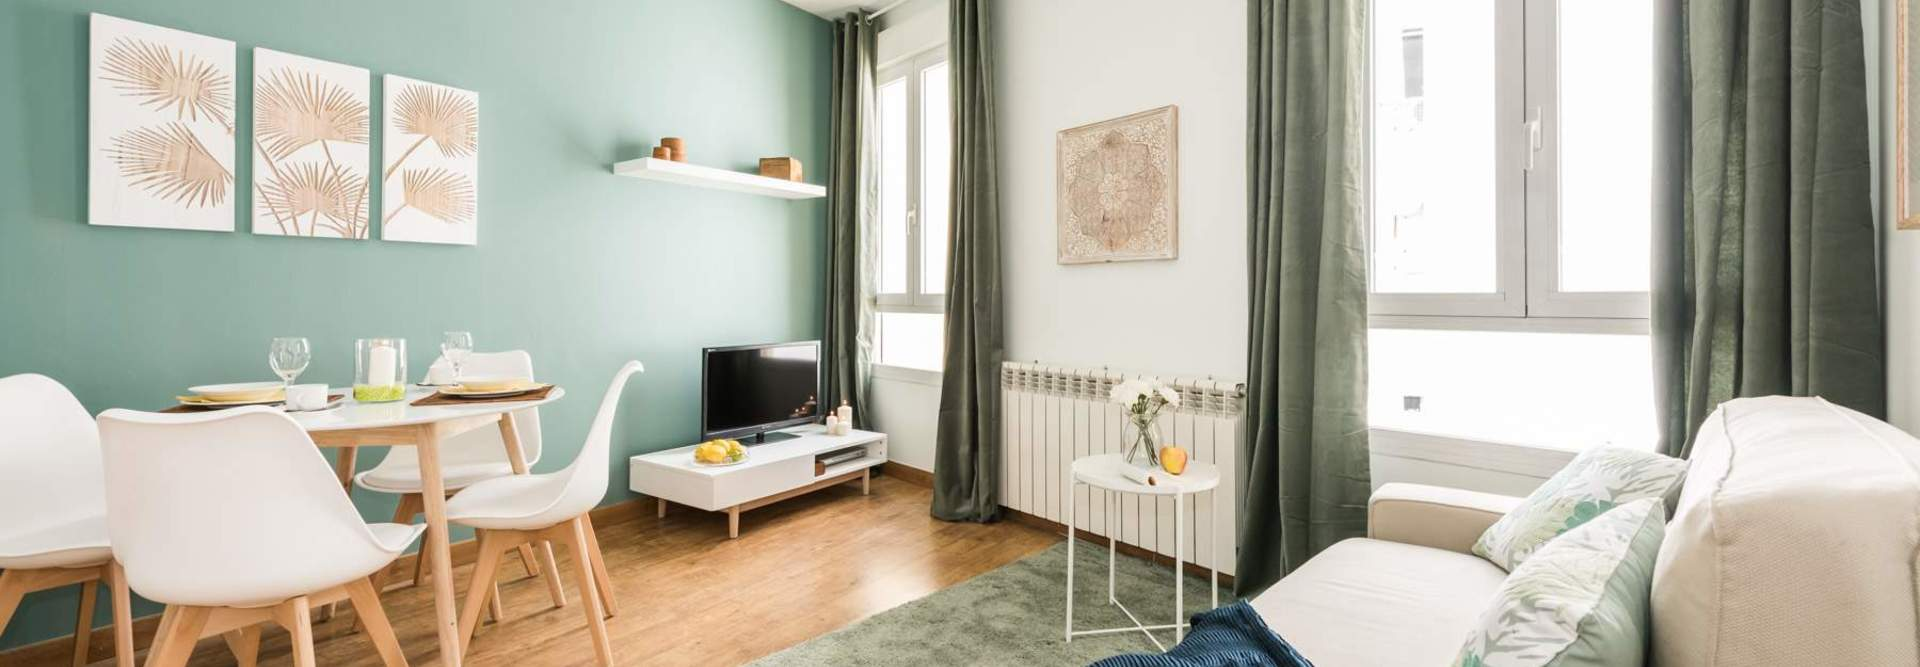 Home alquiler apartamento madrid centro por d as  29